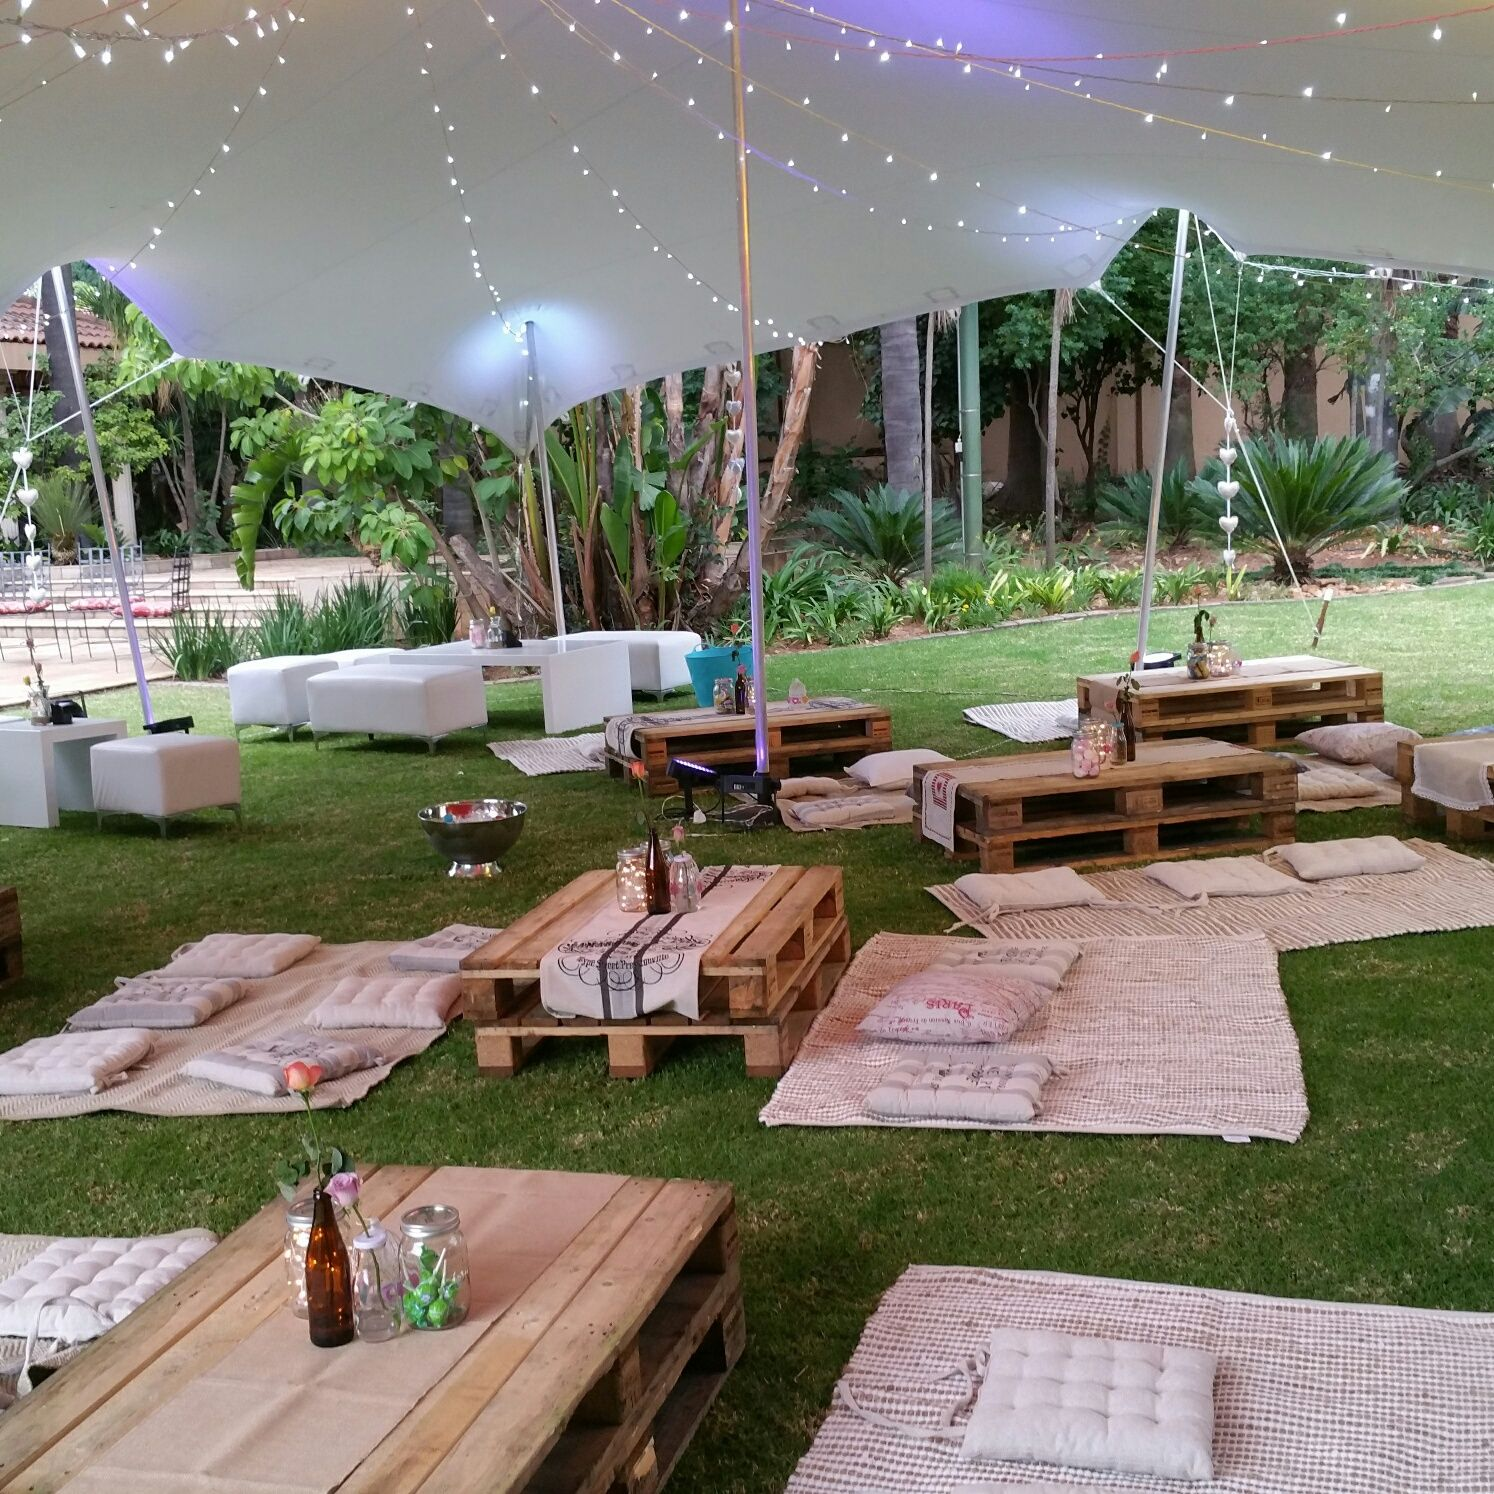 festival decor ideas - Google Search | Tenting | Pinterest ...